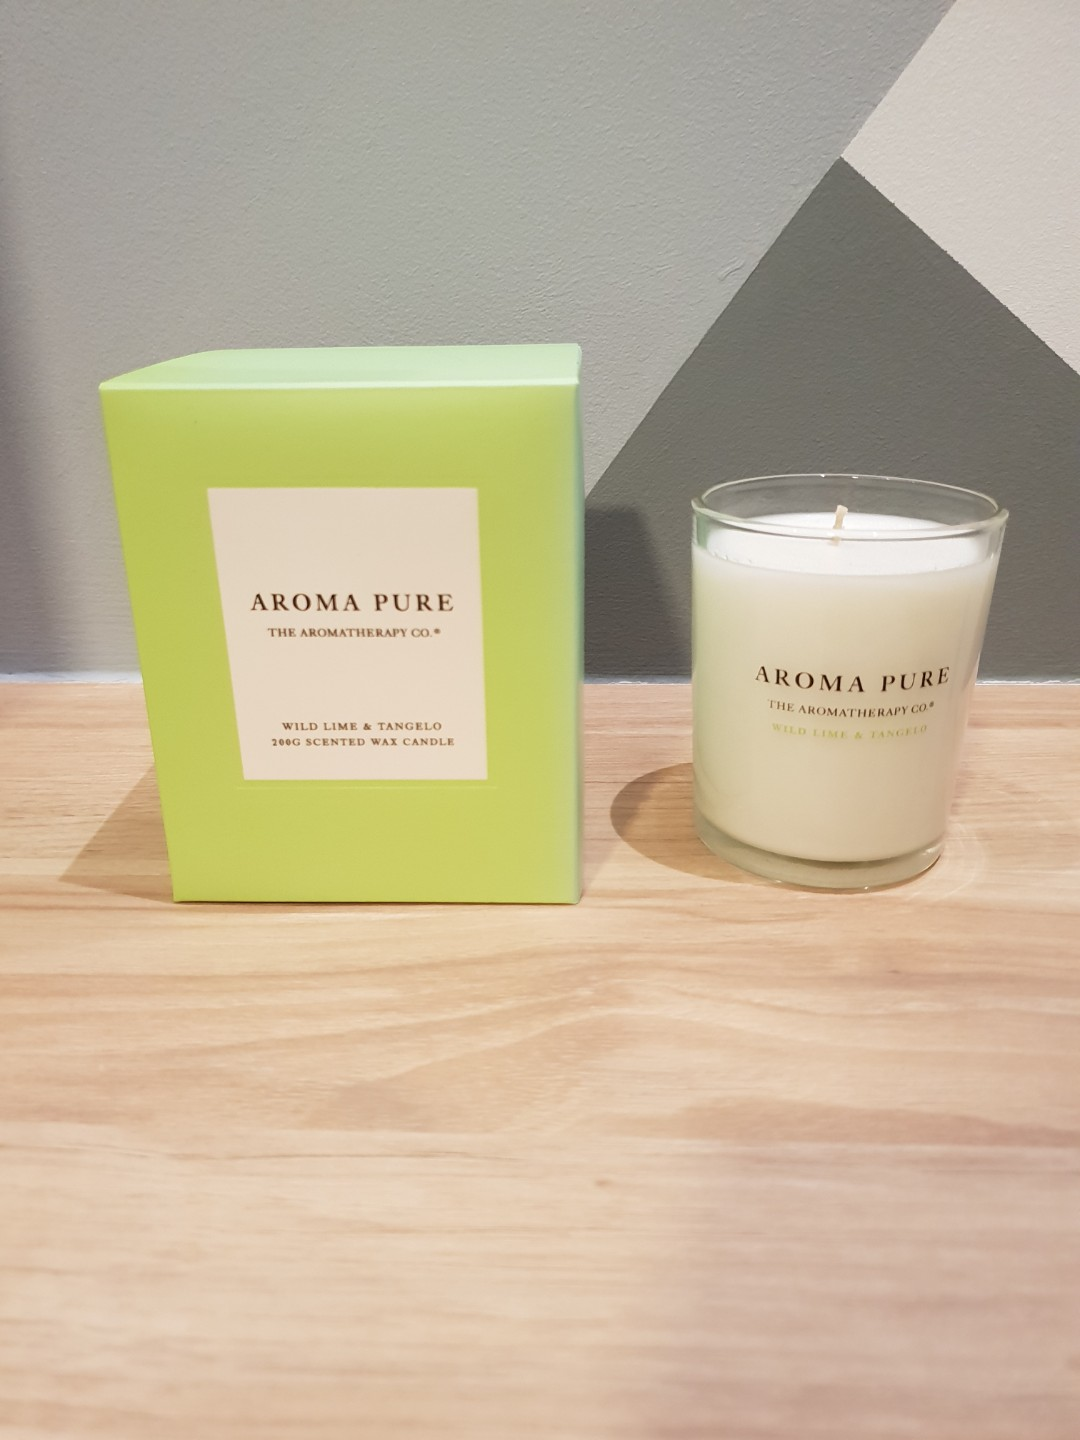 BNIB Aroma Pure 200G Scented Candle (Wild Lime & Tangelo)